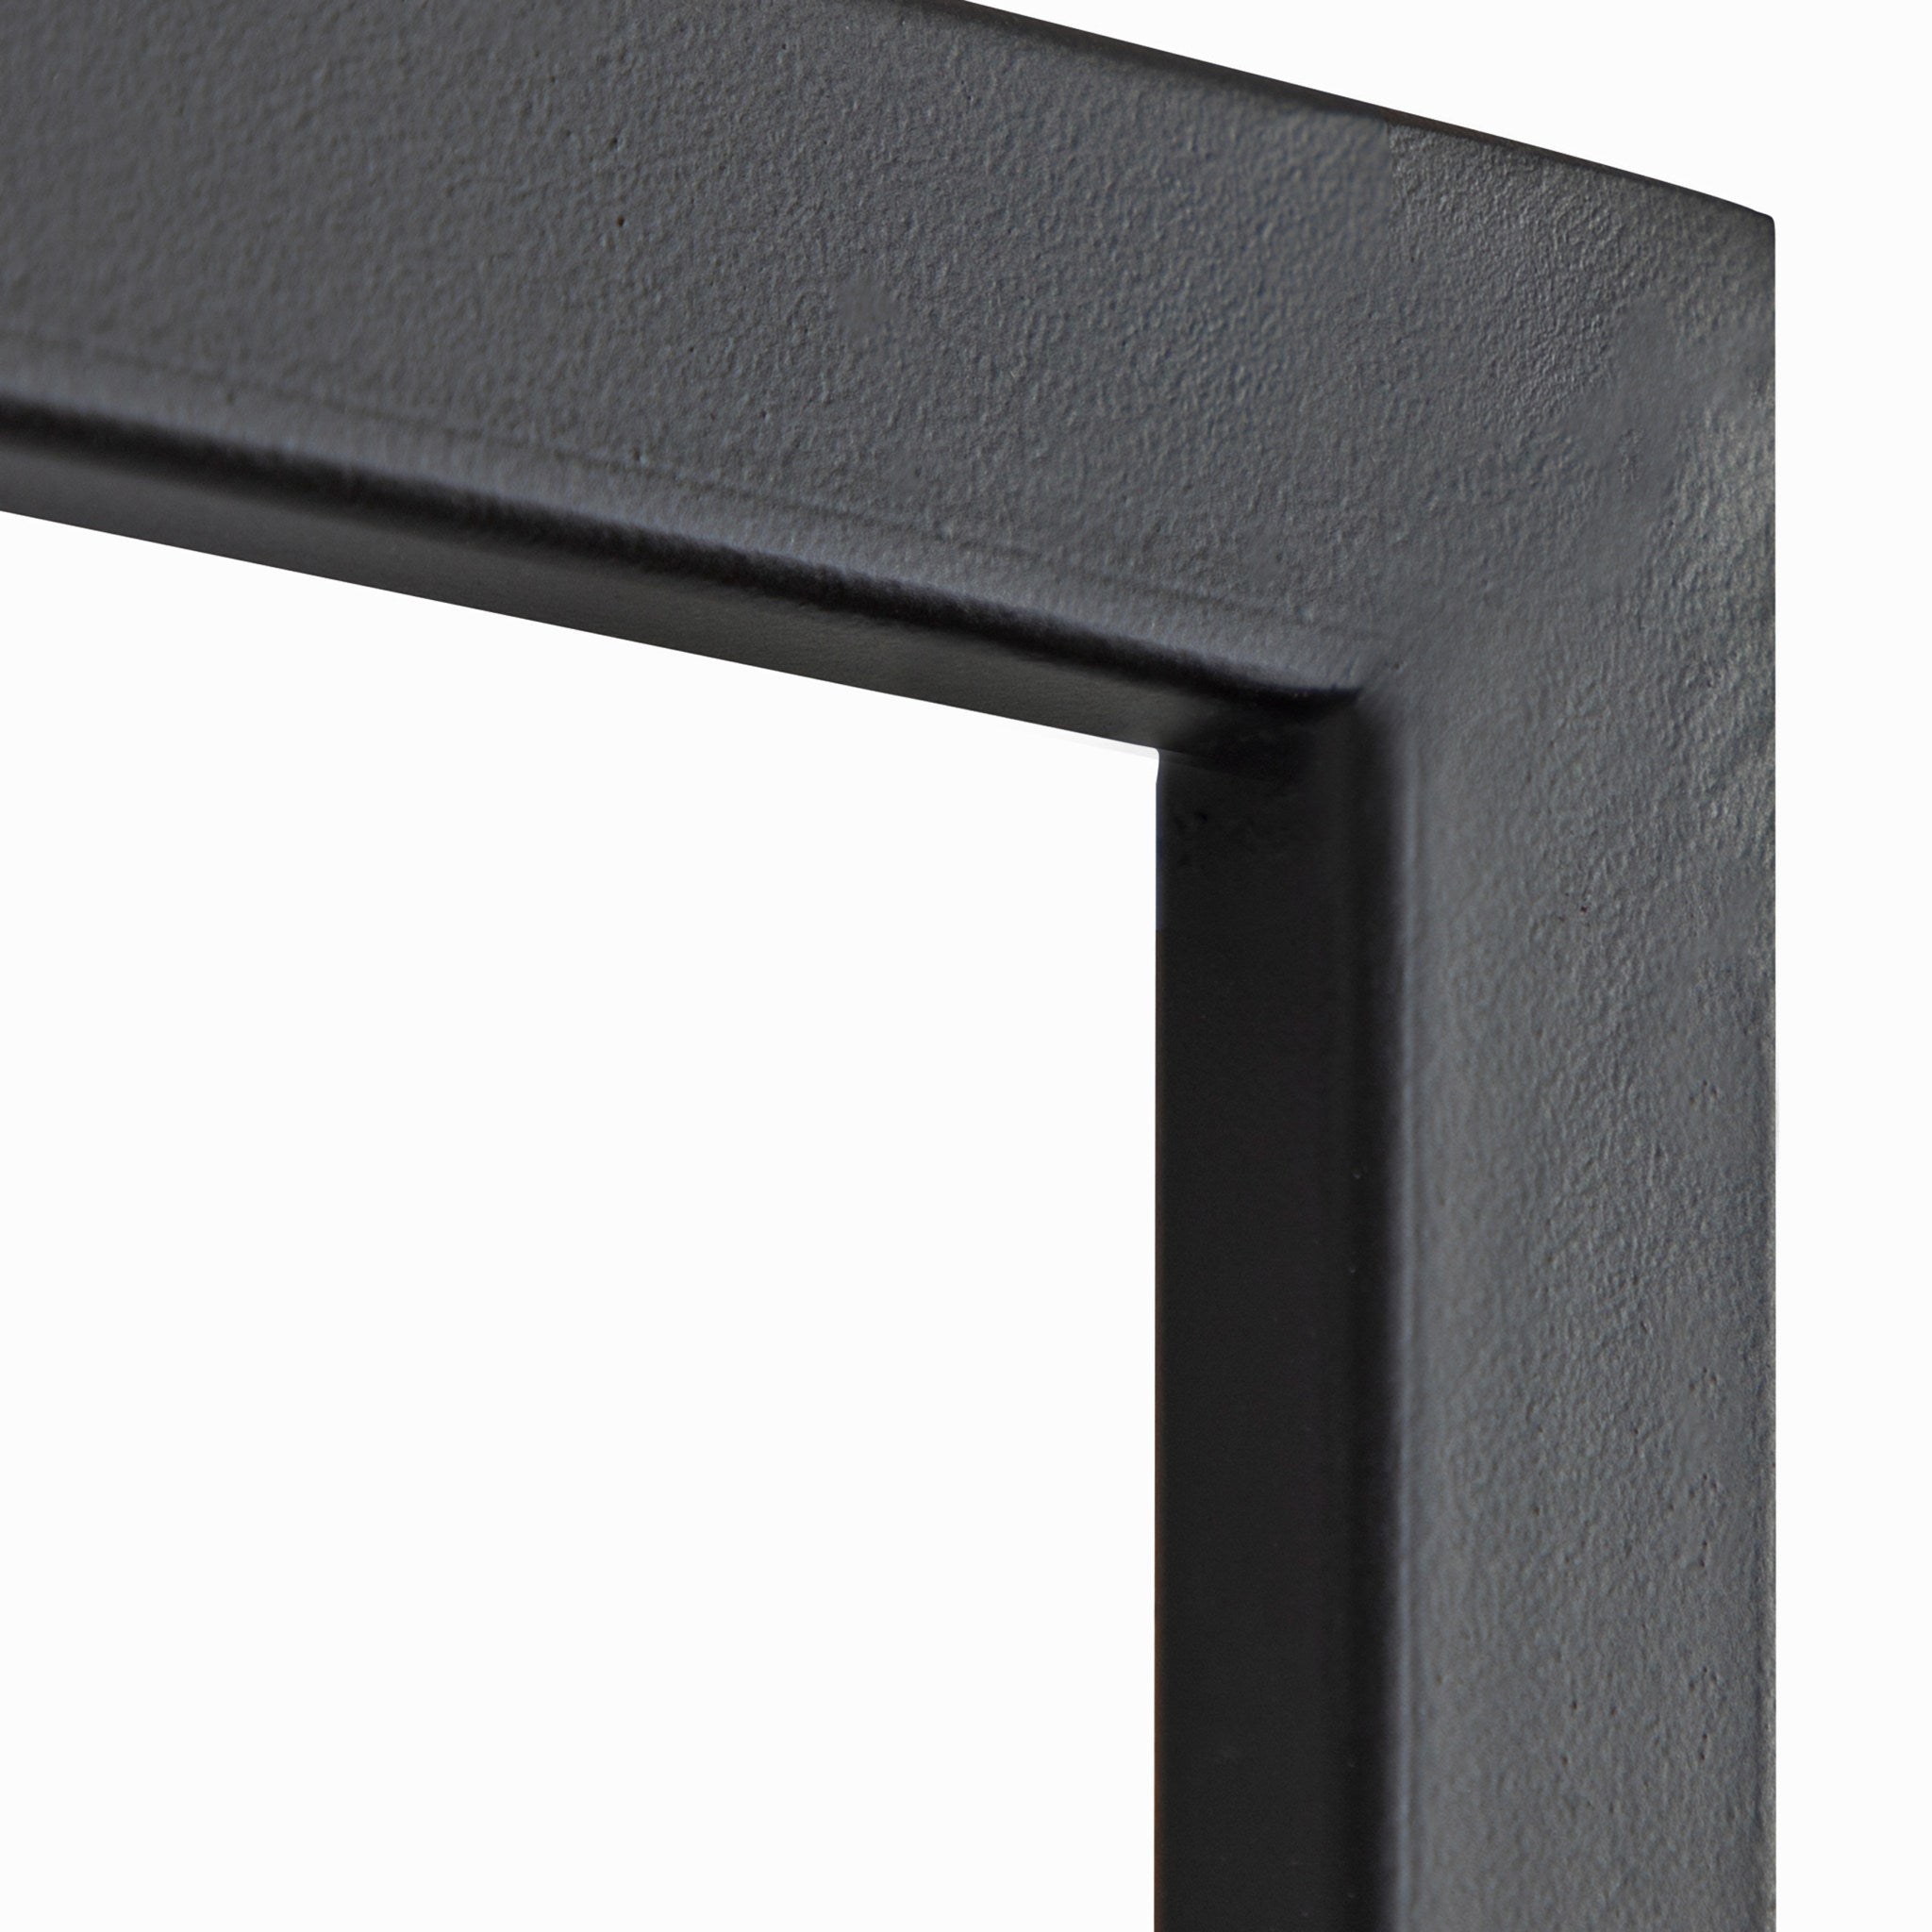 Plaque, Modern, Black